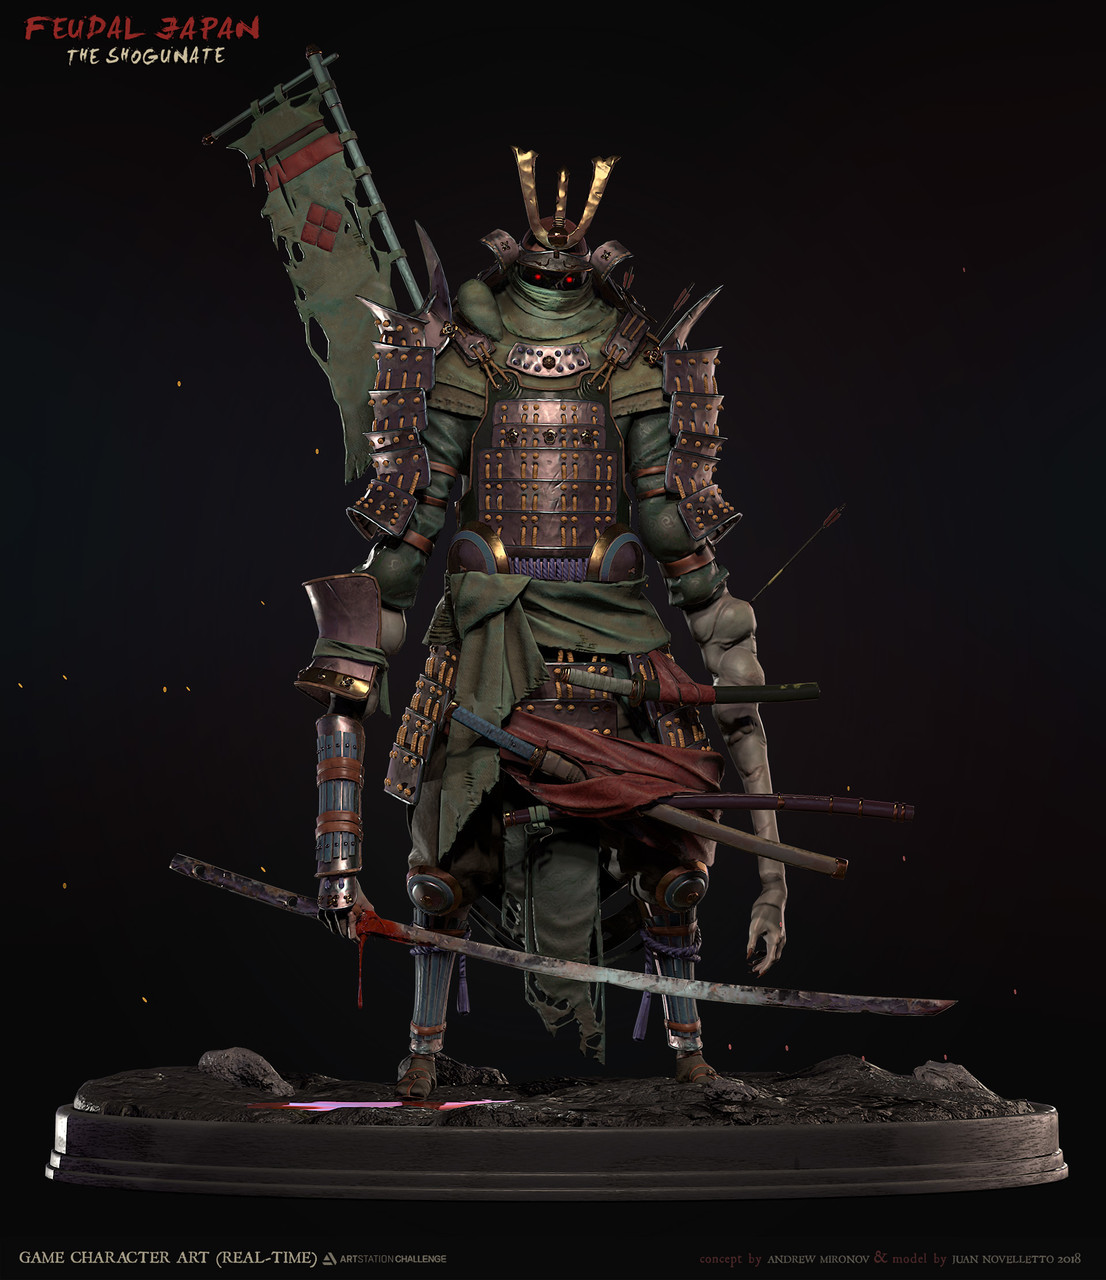 2nd Place, Feudal Japan: The Shogunate: Game Character Art (real-time)